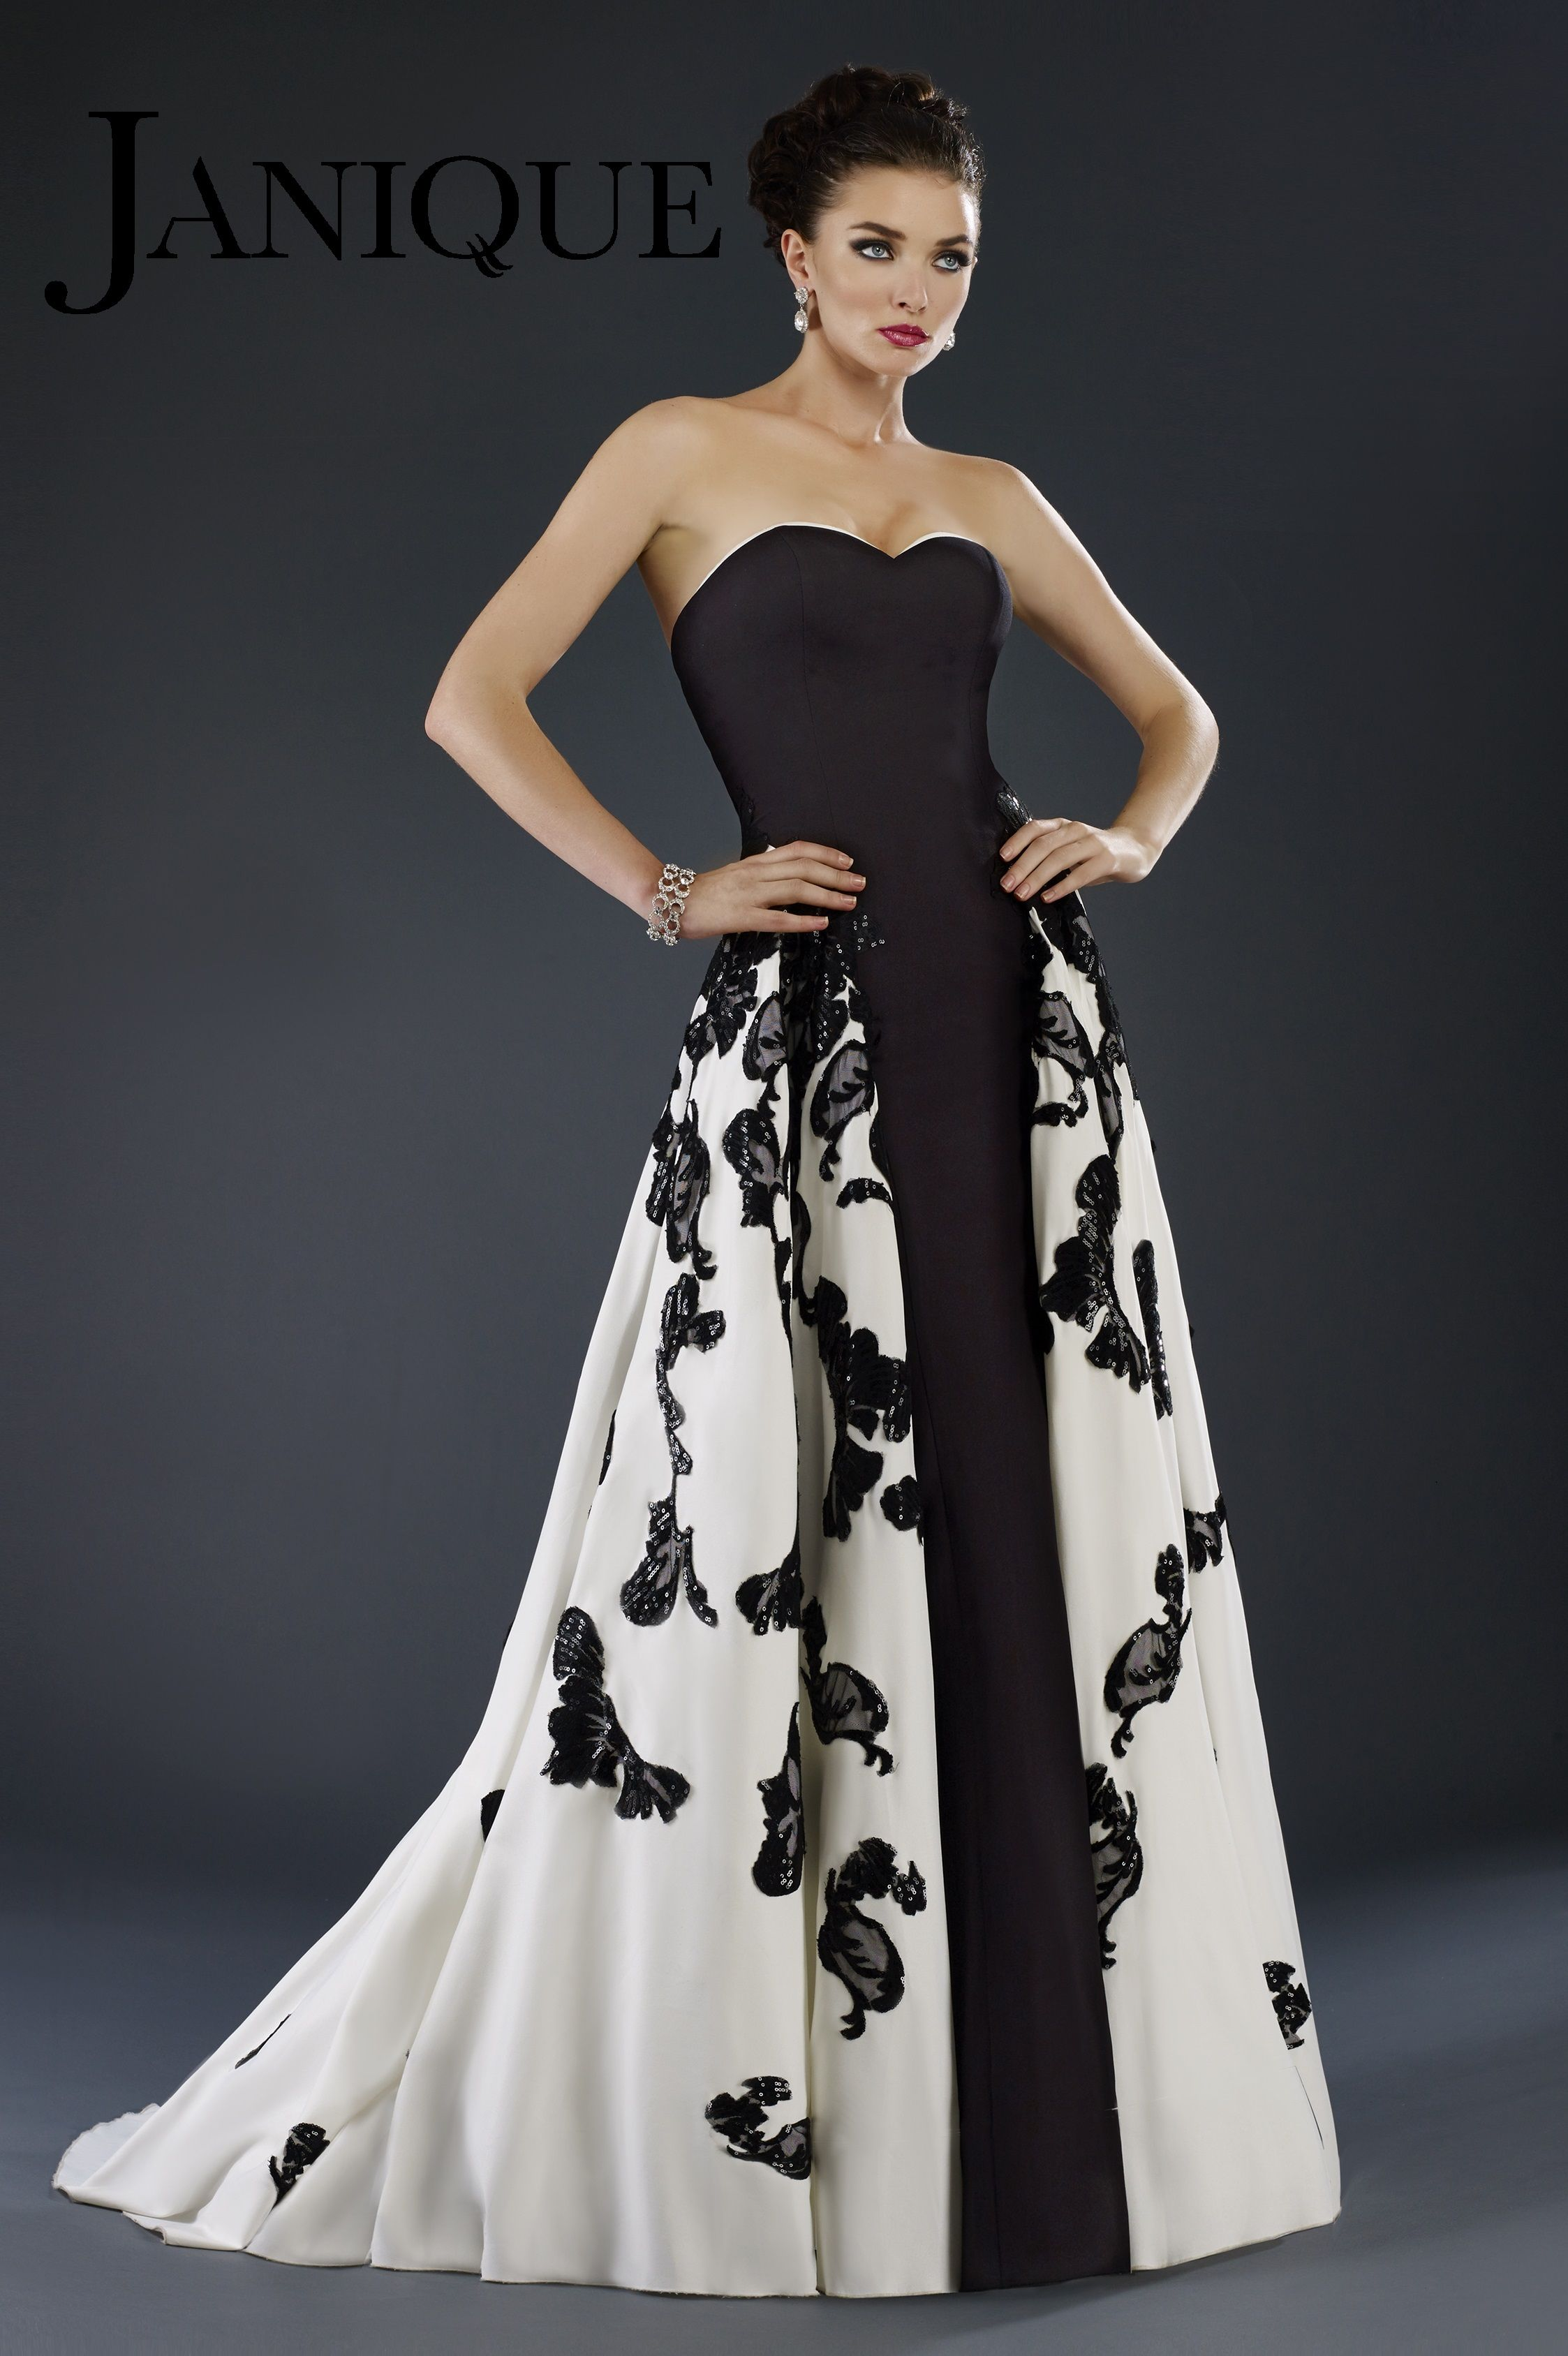 Janique W1376 2016 Dress Collection.Go for Hollywood glamour in the ...